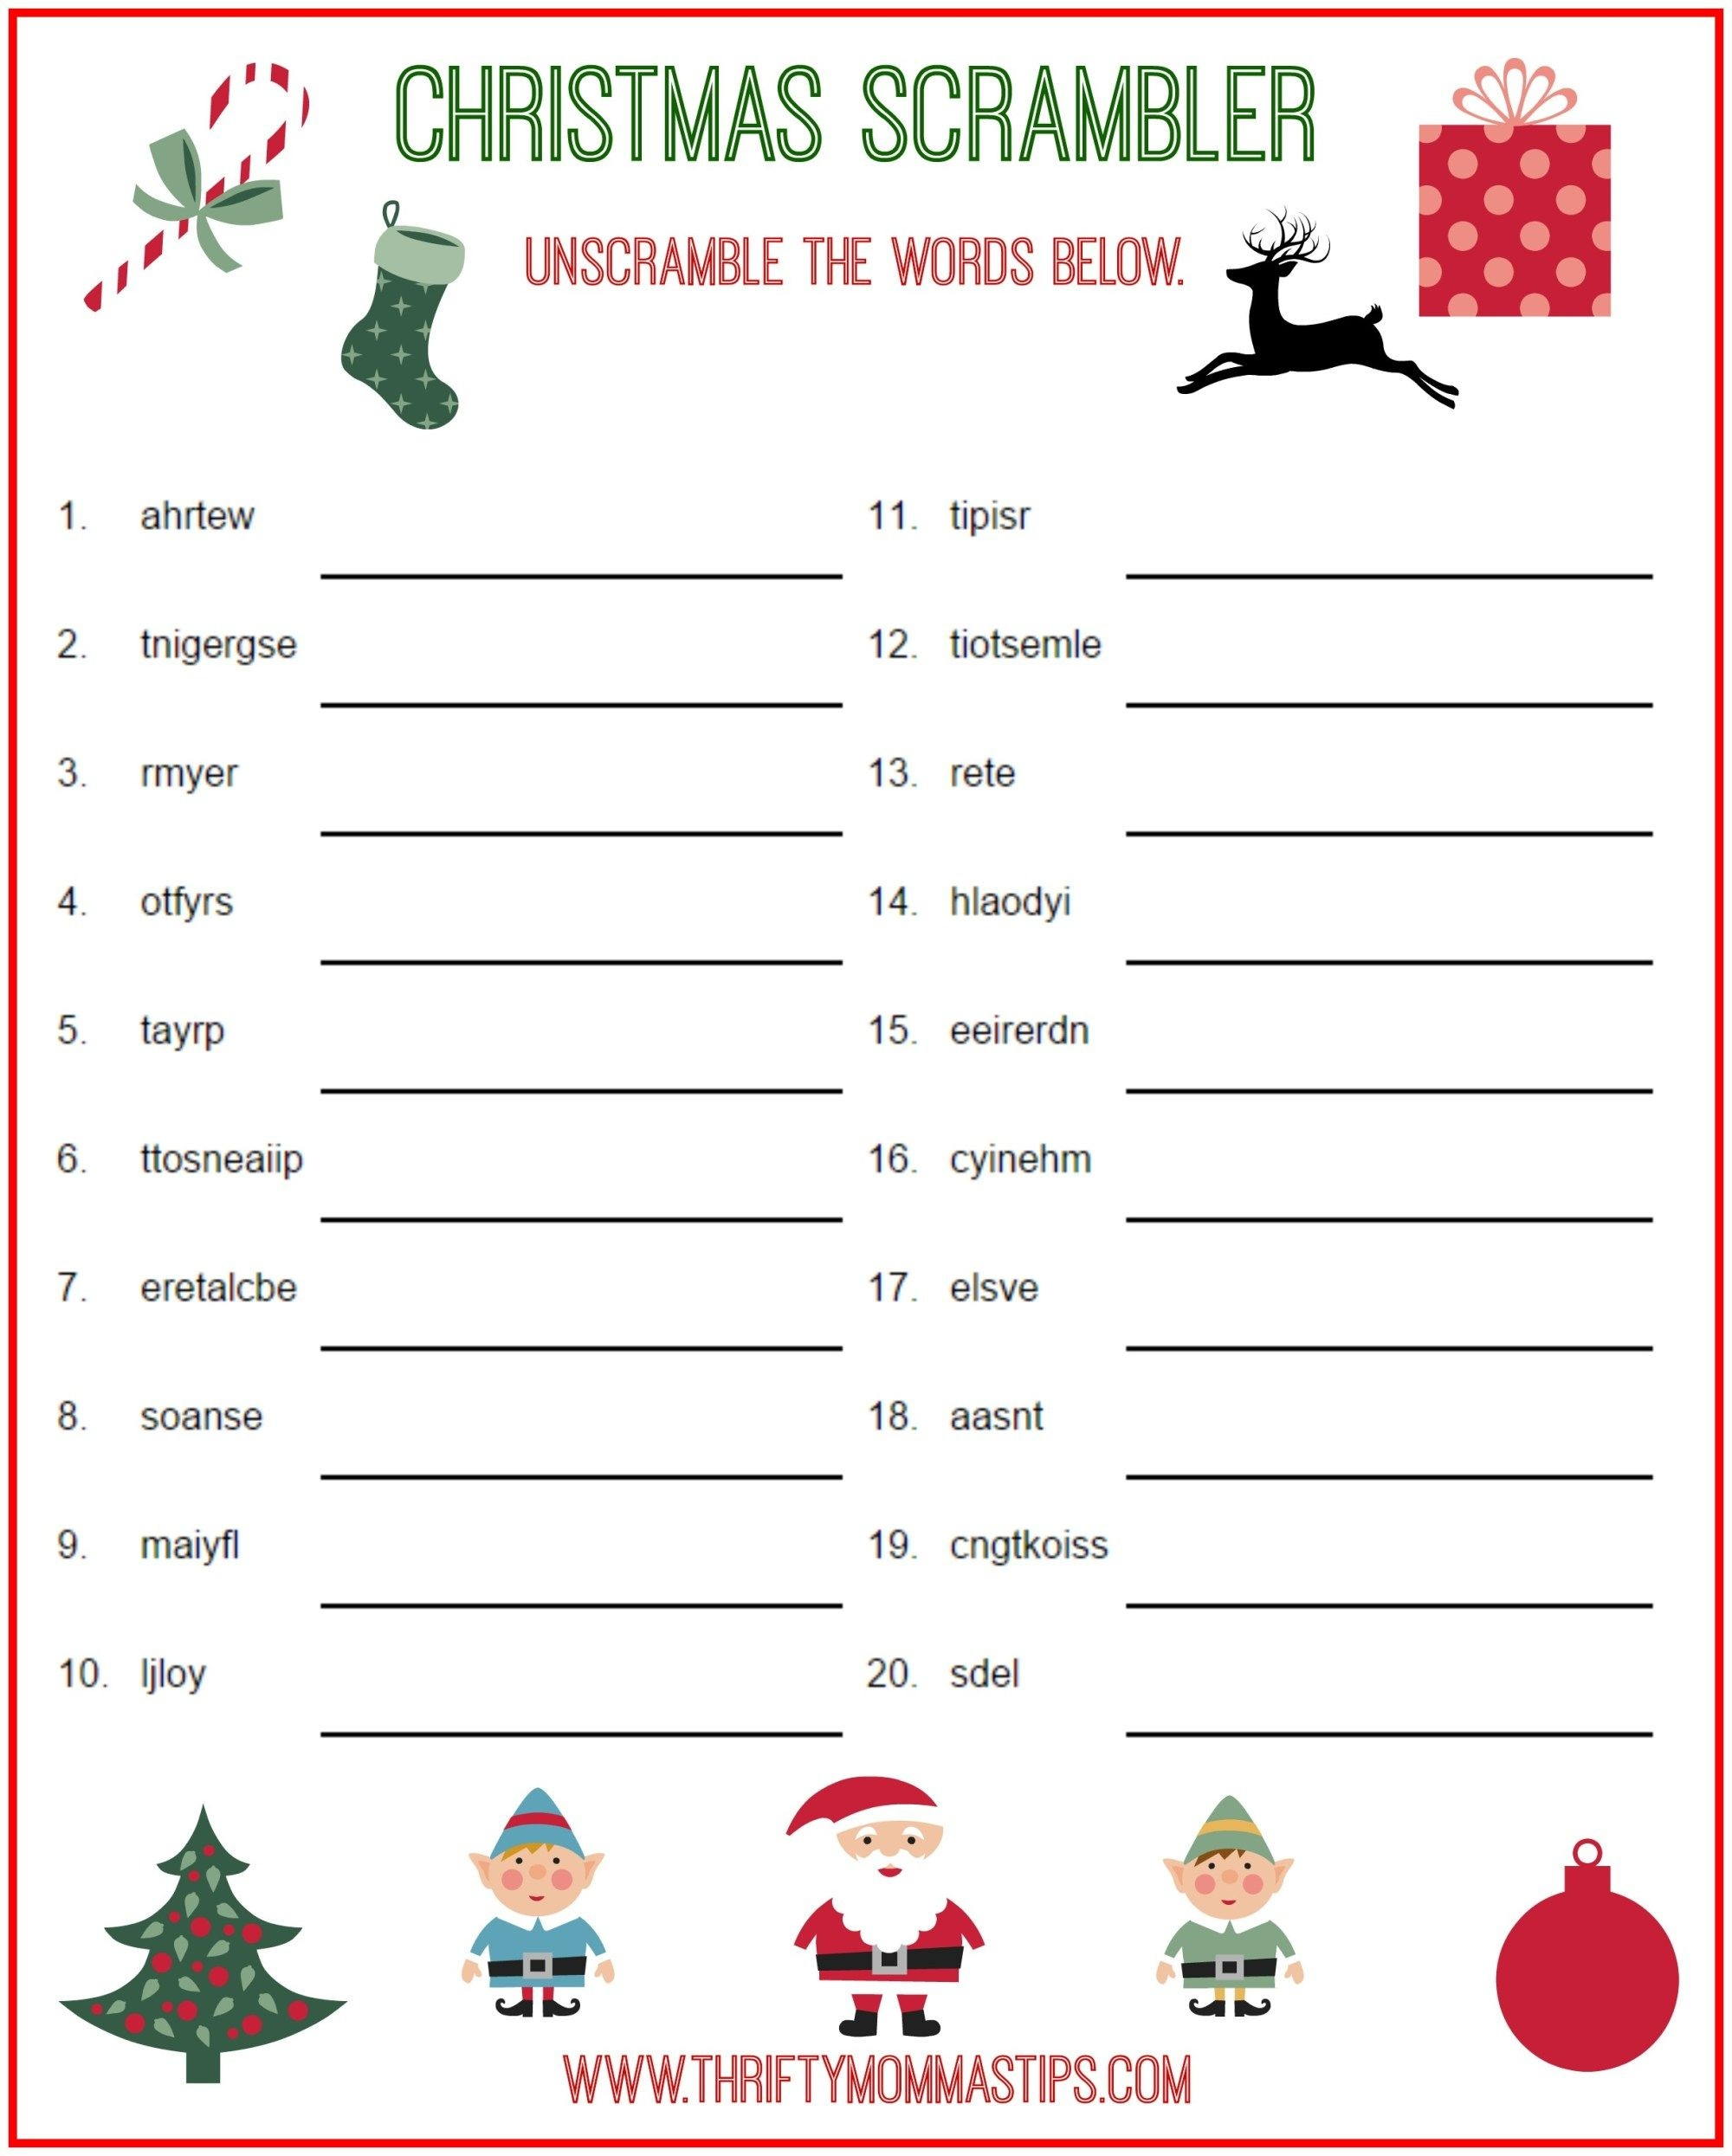 Christmas Scrambler Free Kids Puzzle Printables | Christmas Family - Free Printable Christmas Games And Puzzles